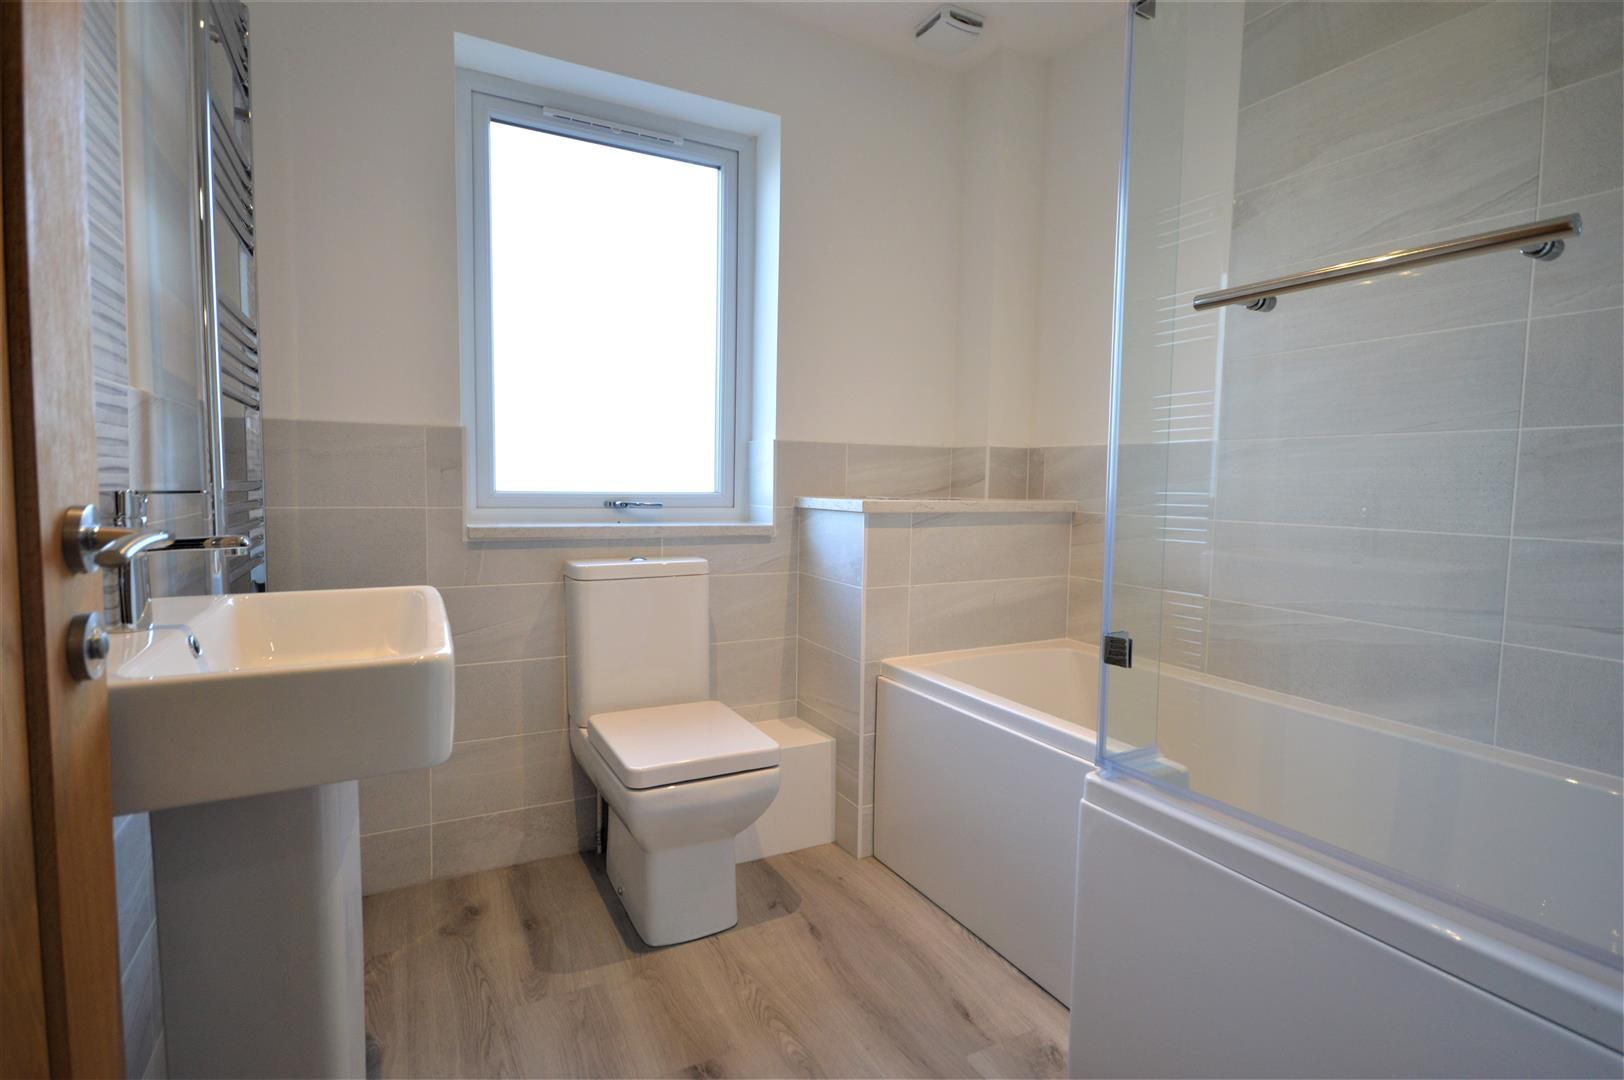 3 bed terraced for sale in Leominster 12